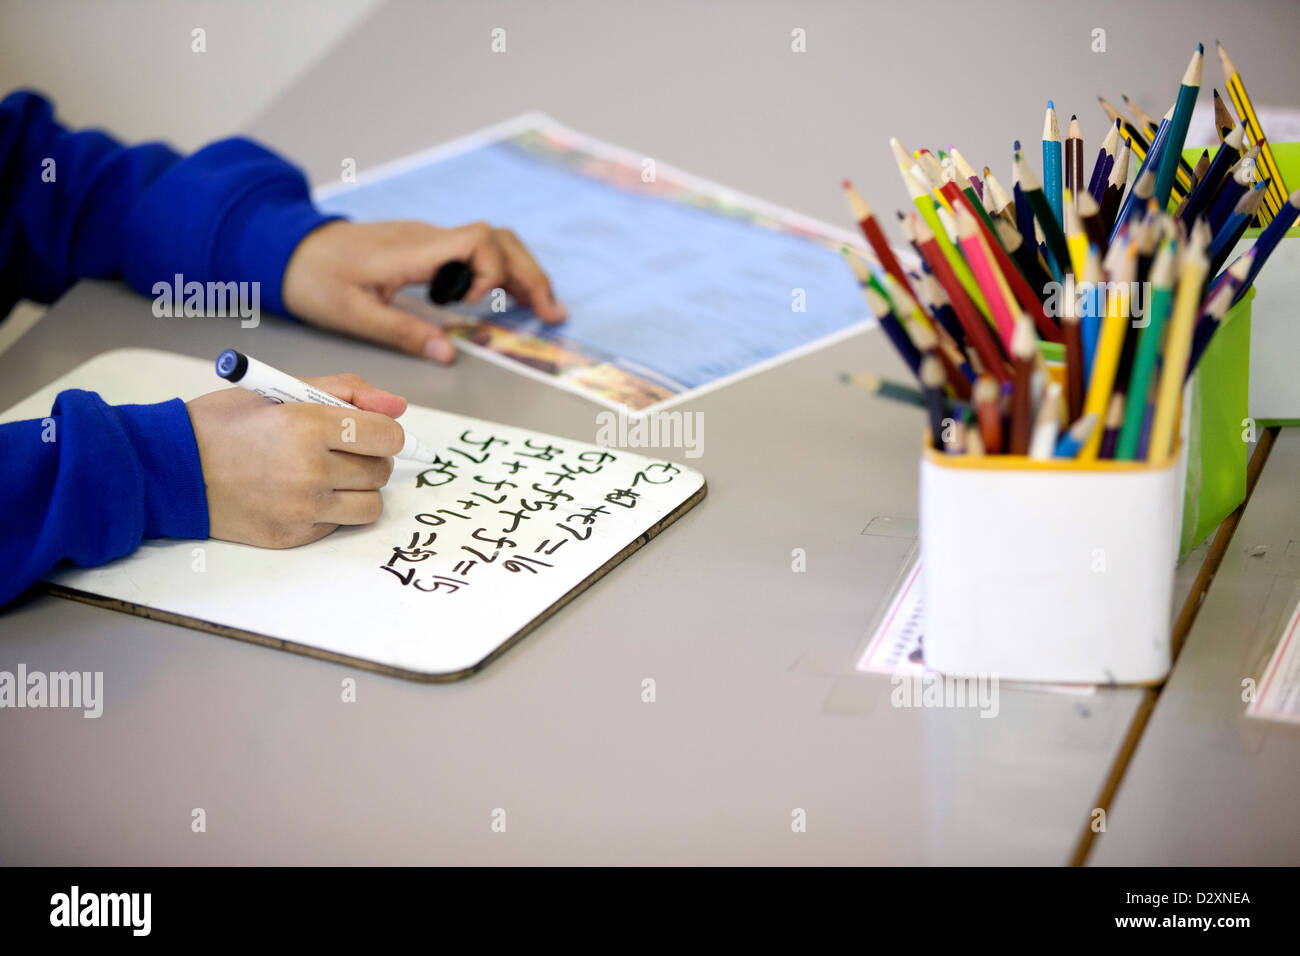 Primary School Child Writing On White Board With Marker Pen Stock Photo